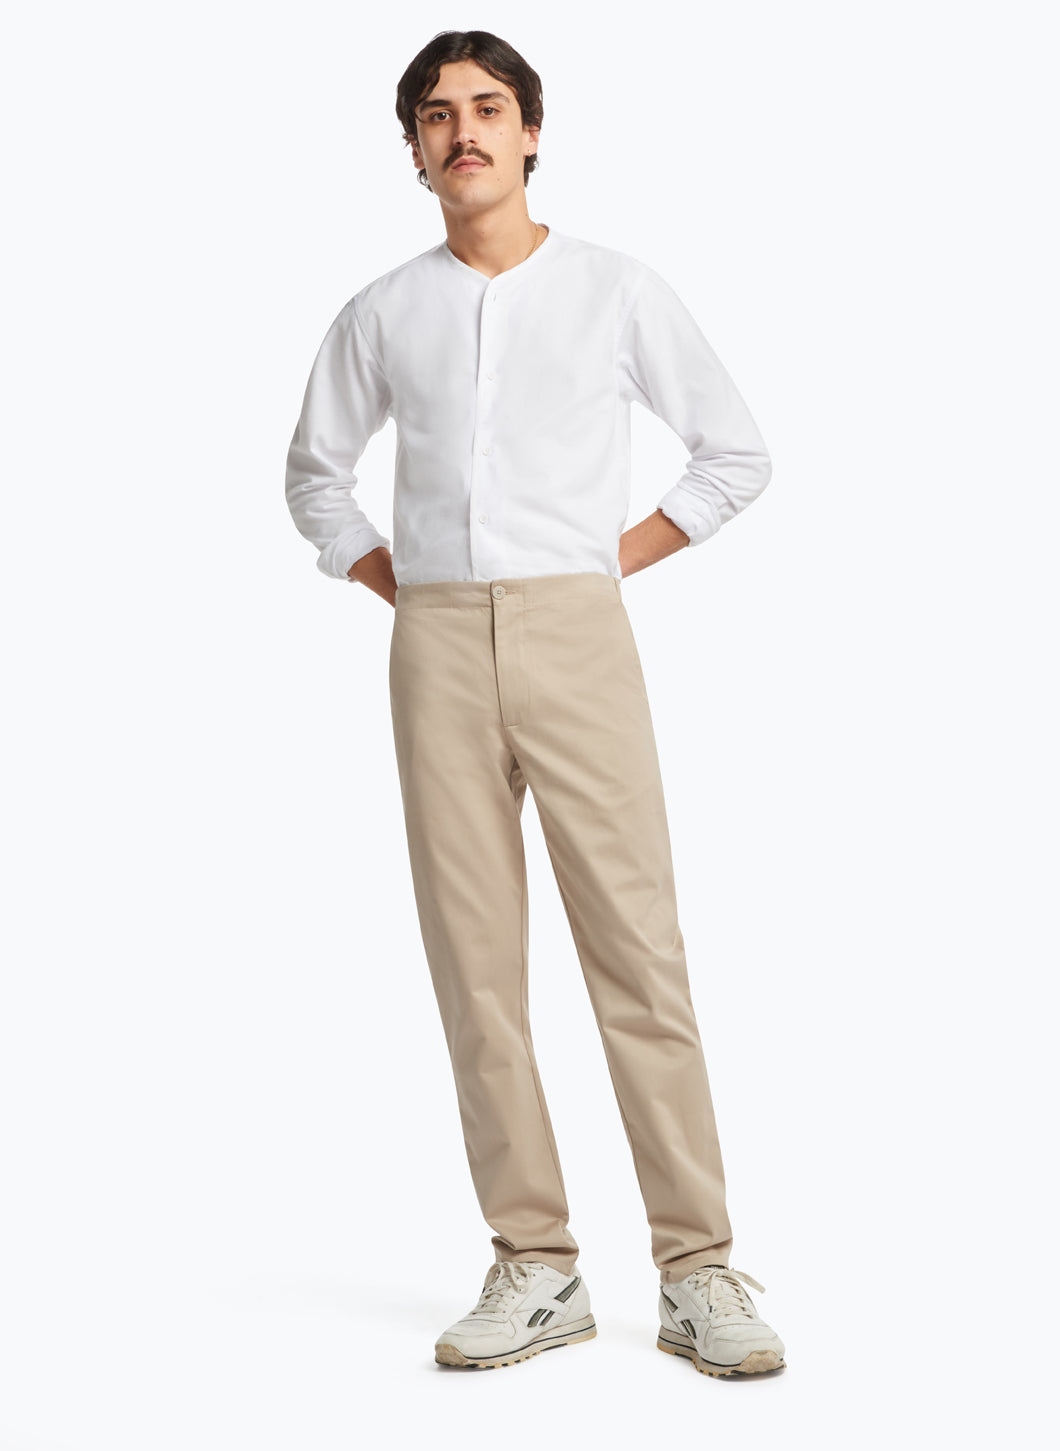 Pants with Notched Pockets in Beige Cotton Gabardine